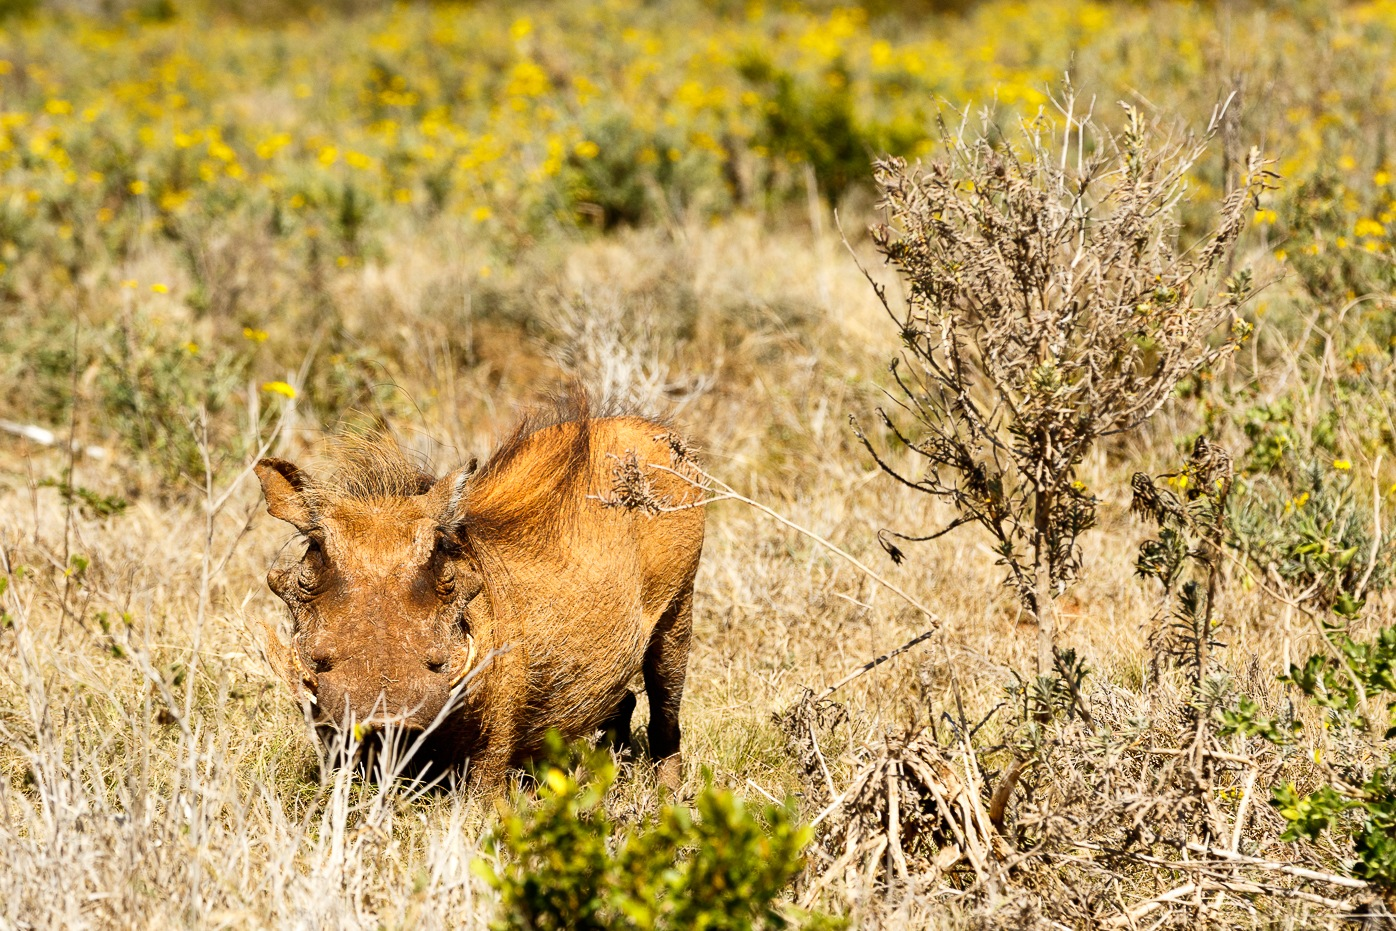 Common warthog hiding between the bushes by Mark de Scande